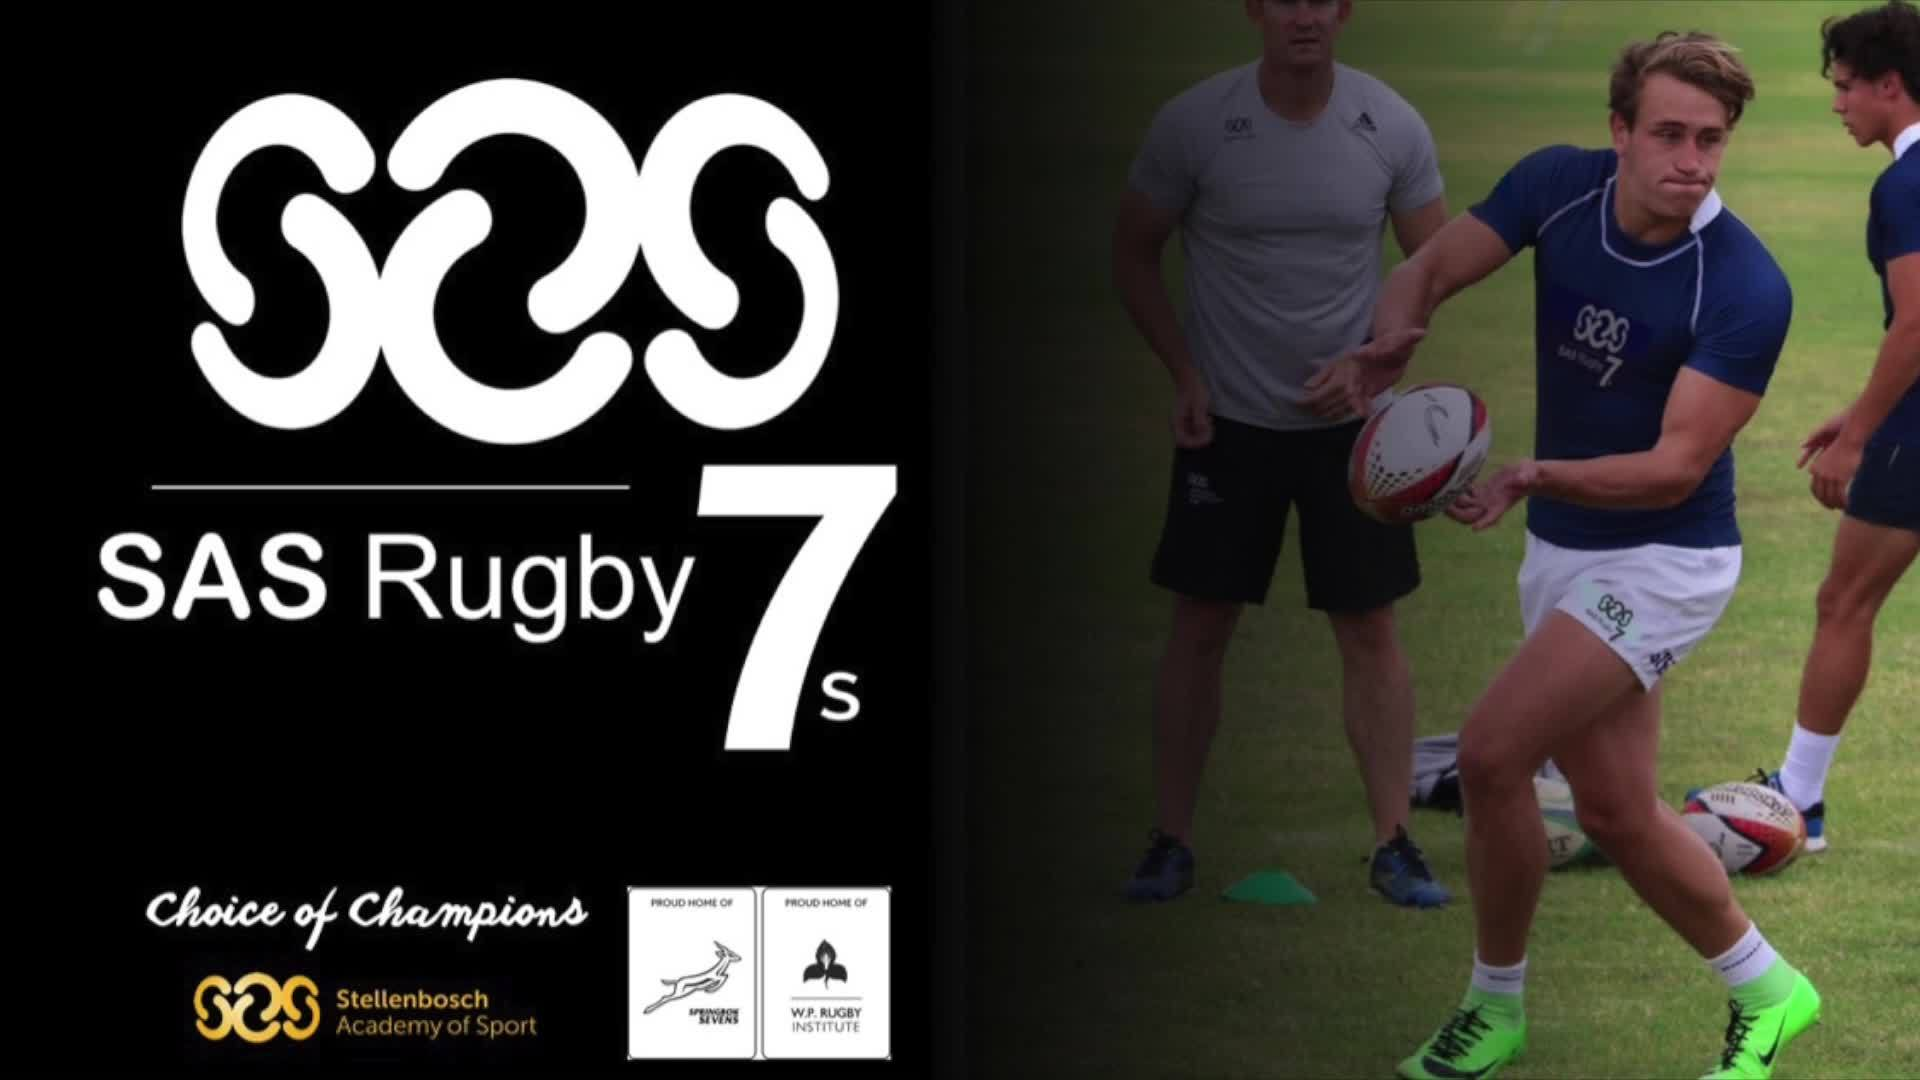 Introducing SAS SEVENS! Another world class SAS Rugby programme headed up by former international…